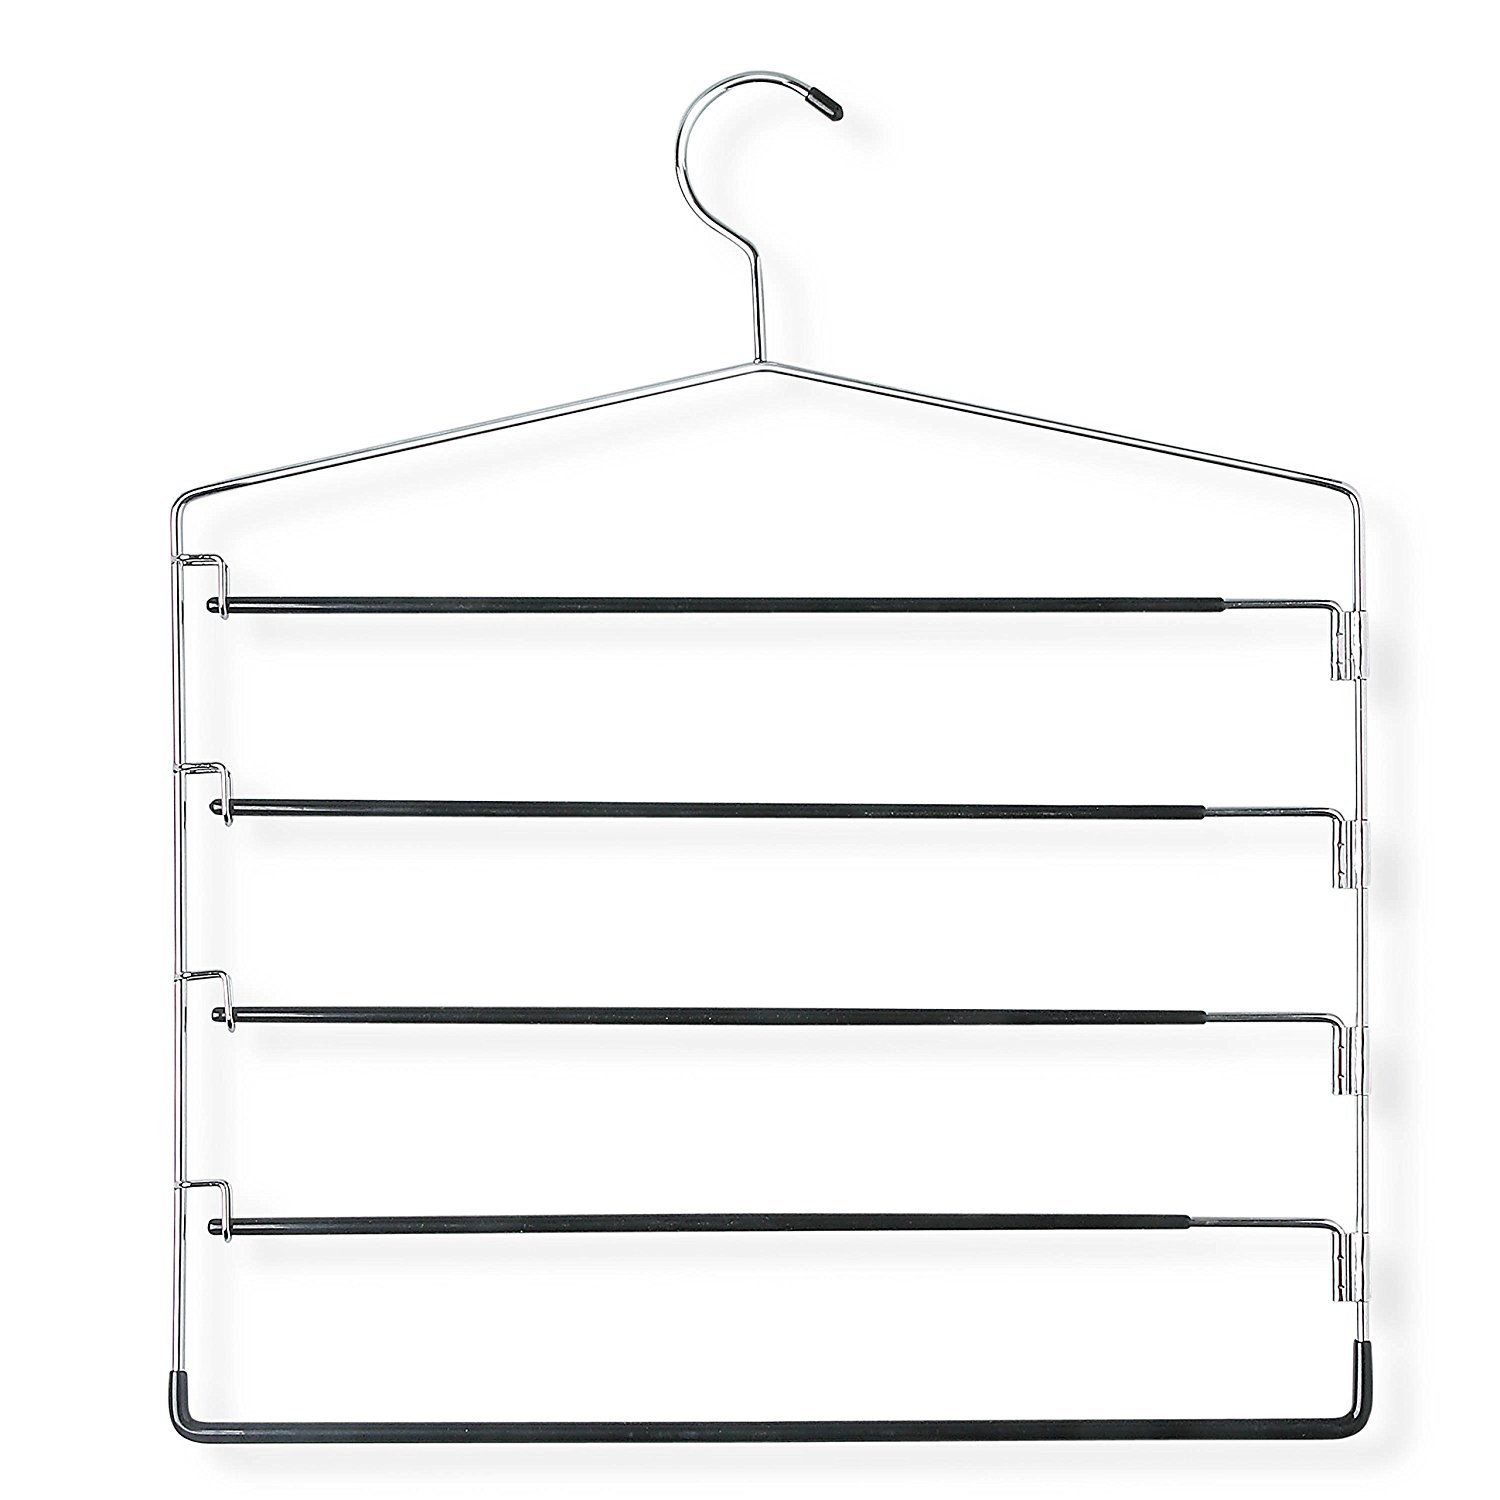 And A Pants Hanger And Skirt Hanger That Do The Same (incredibly Helpful)  Thing